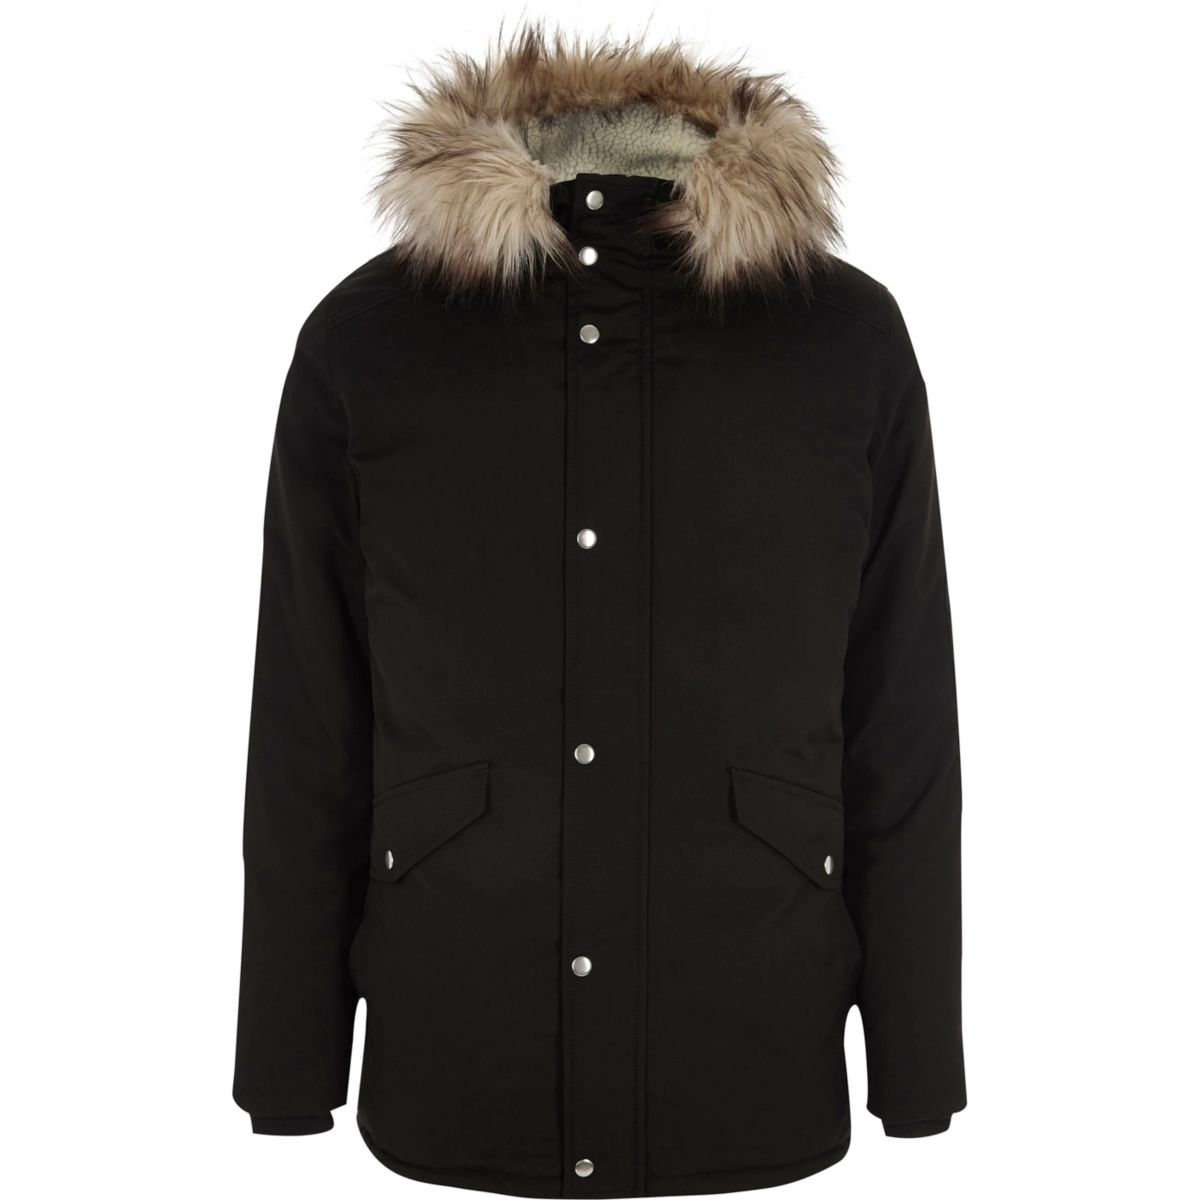 Black faux fur trim hooded parka - Coats & Jackets - Sale - men